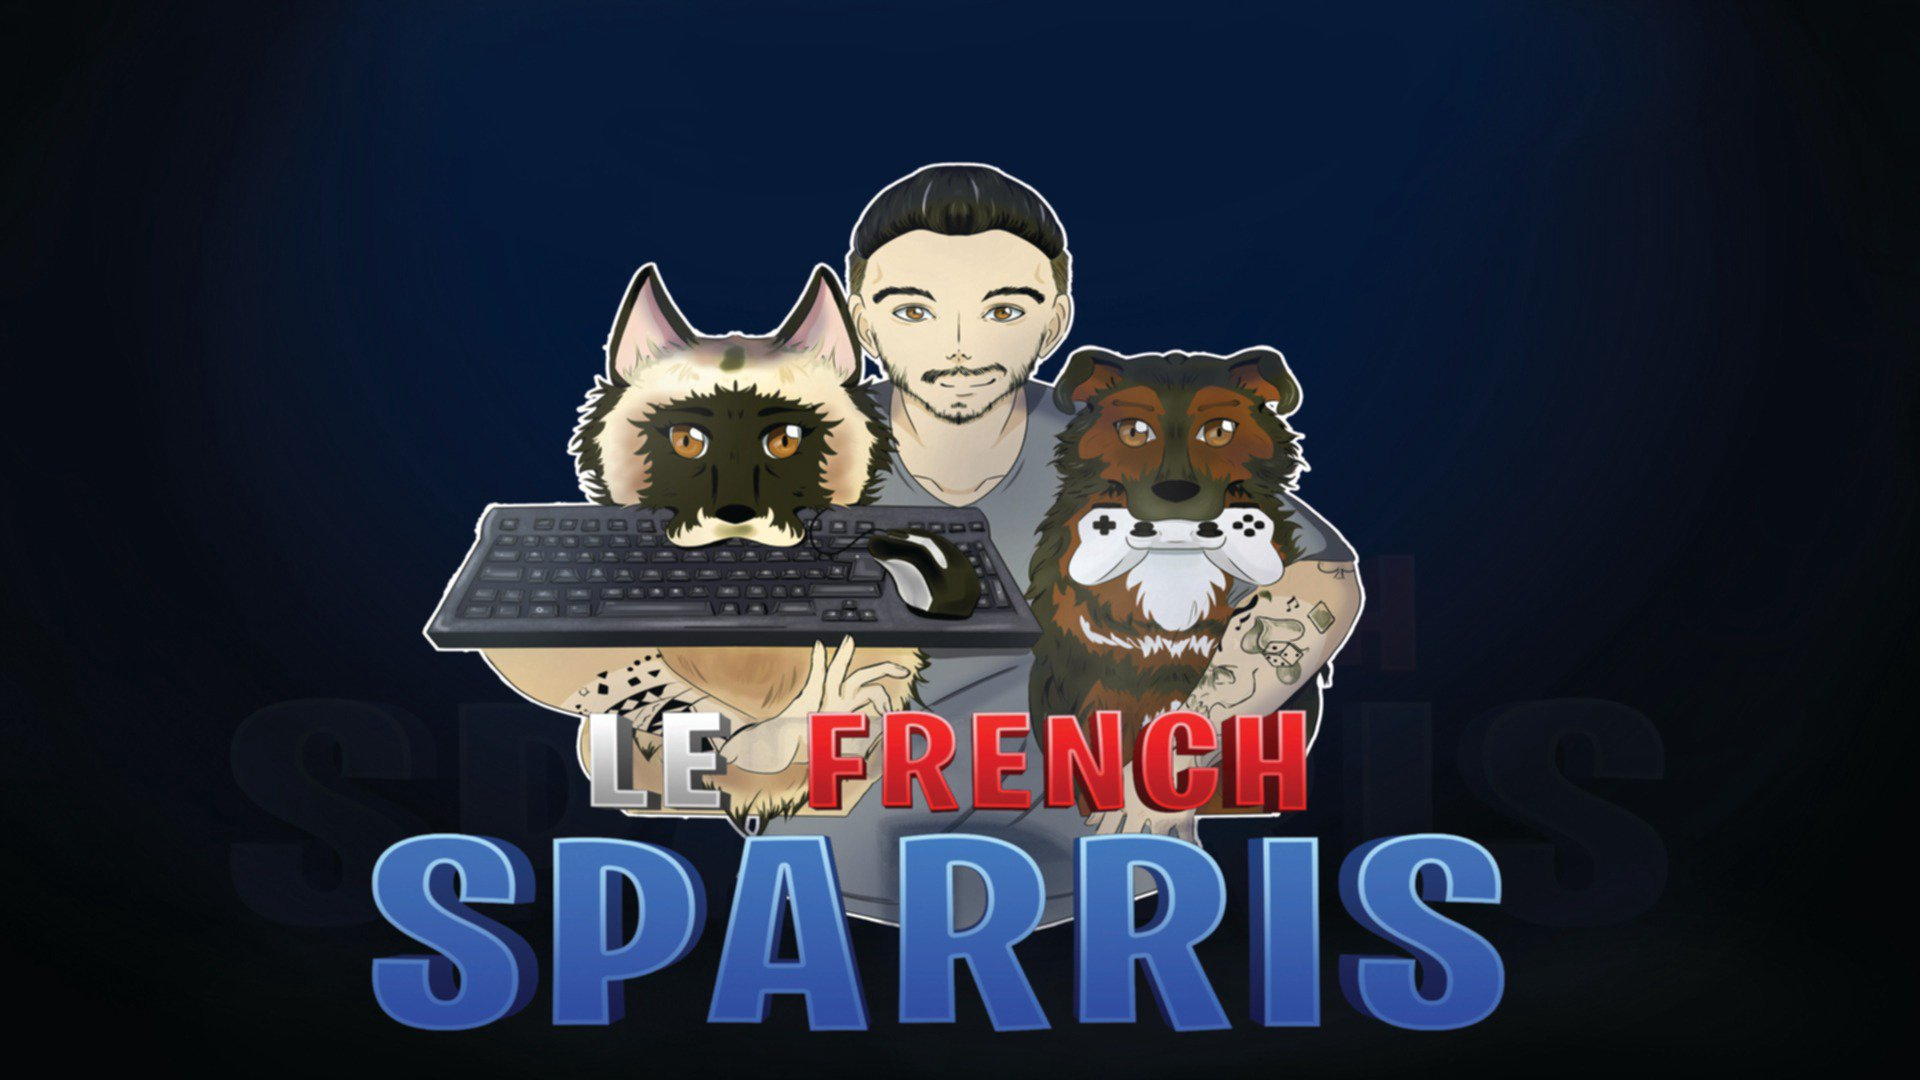 Twitch stream of LeFrenchSparris